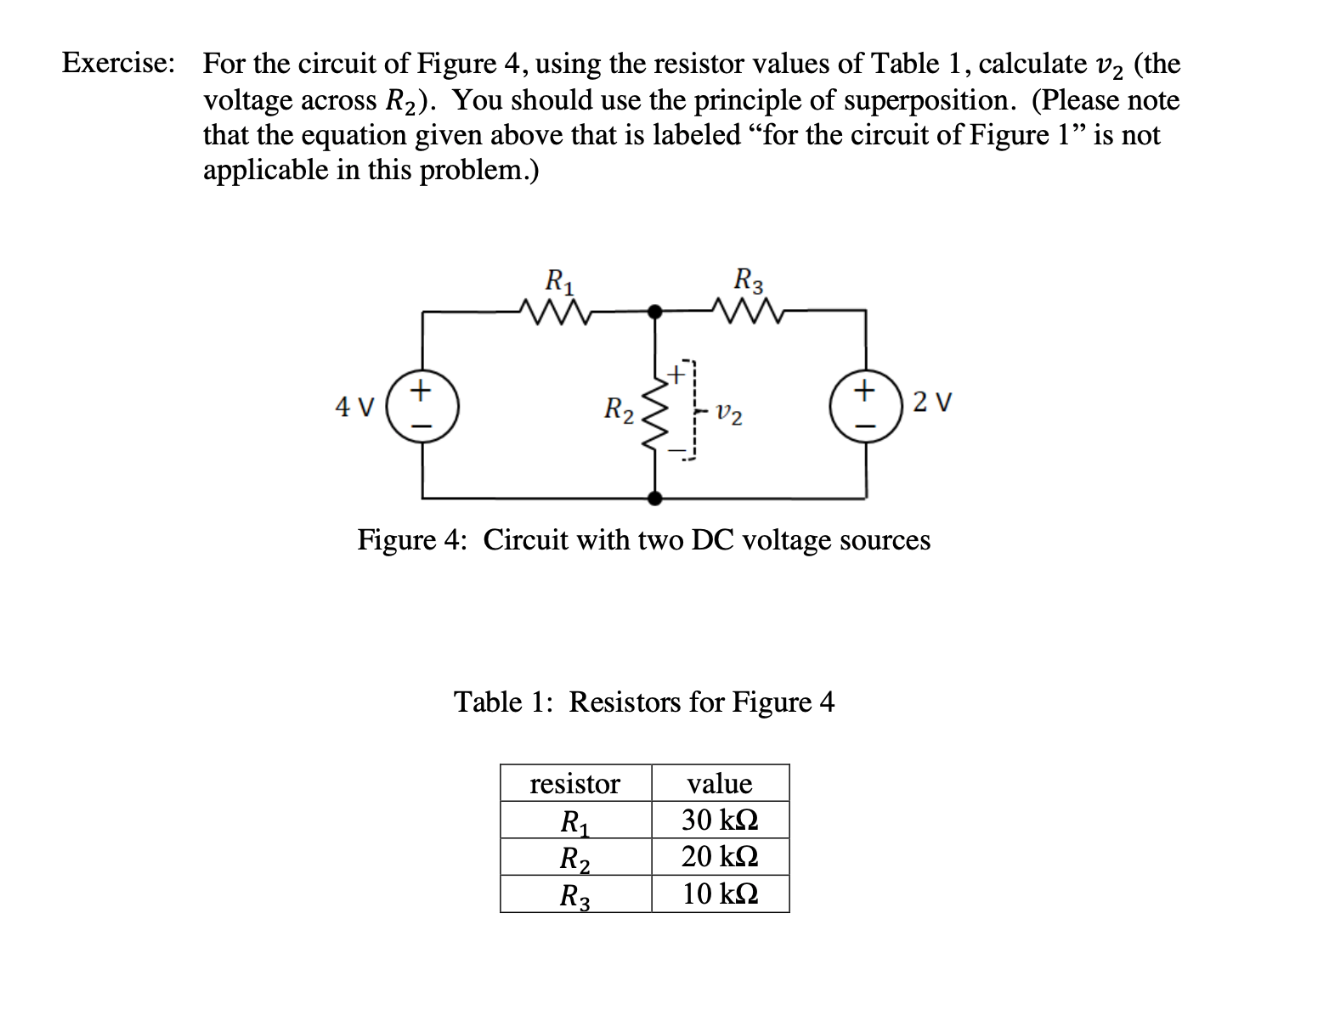 """Exercise: For the circuit of Figure 4, using the resistor values of Table 1, calculate v2 (the voltage across that the equation given above that is labeled """"for the circuit of Figure 1"""" is not applicable in this problem.) R2). You should use the principle of superposition. (Please note R3 R1 W 2 V 4 V R2 Figure 4: Circuit with two DC voltage sources Table 1: Resistors for Figure 4 resistor value 30 k 20 k2 R2 R3 10 k ww"""